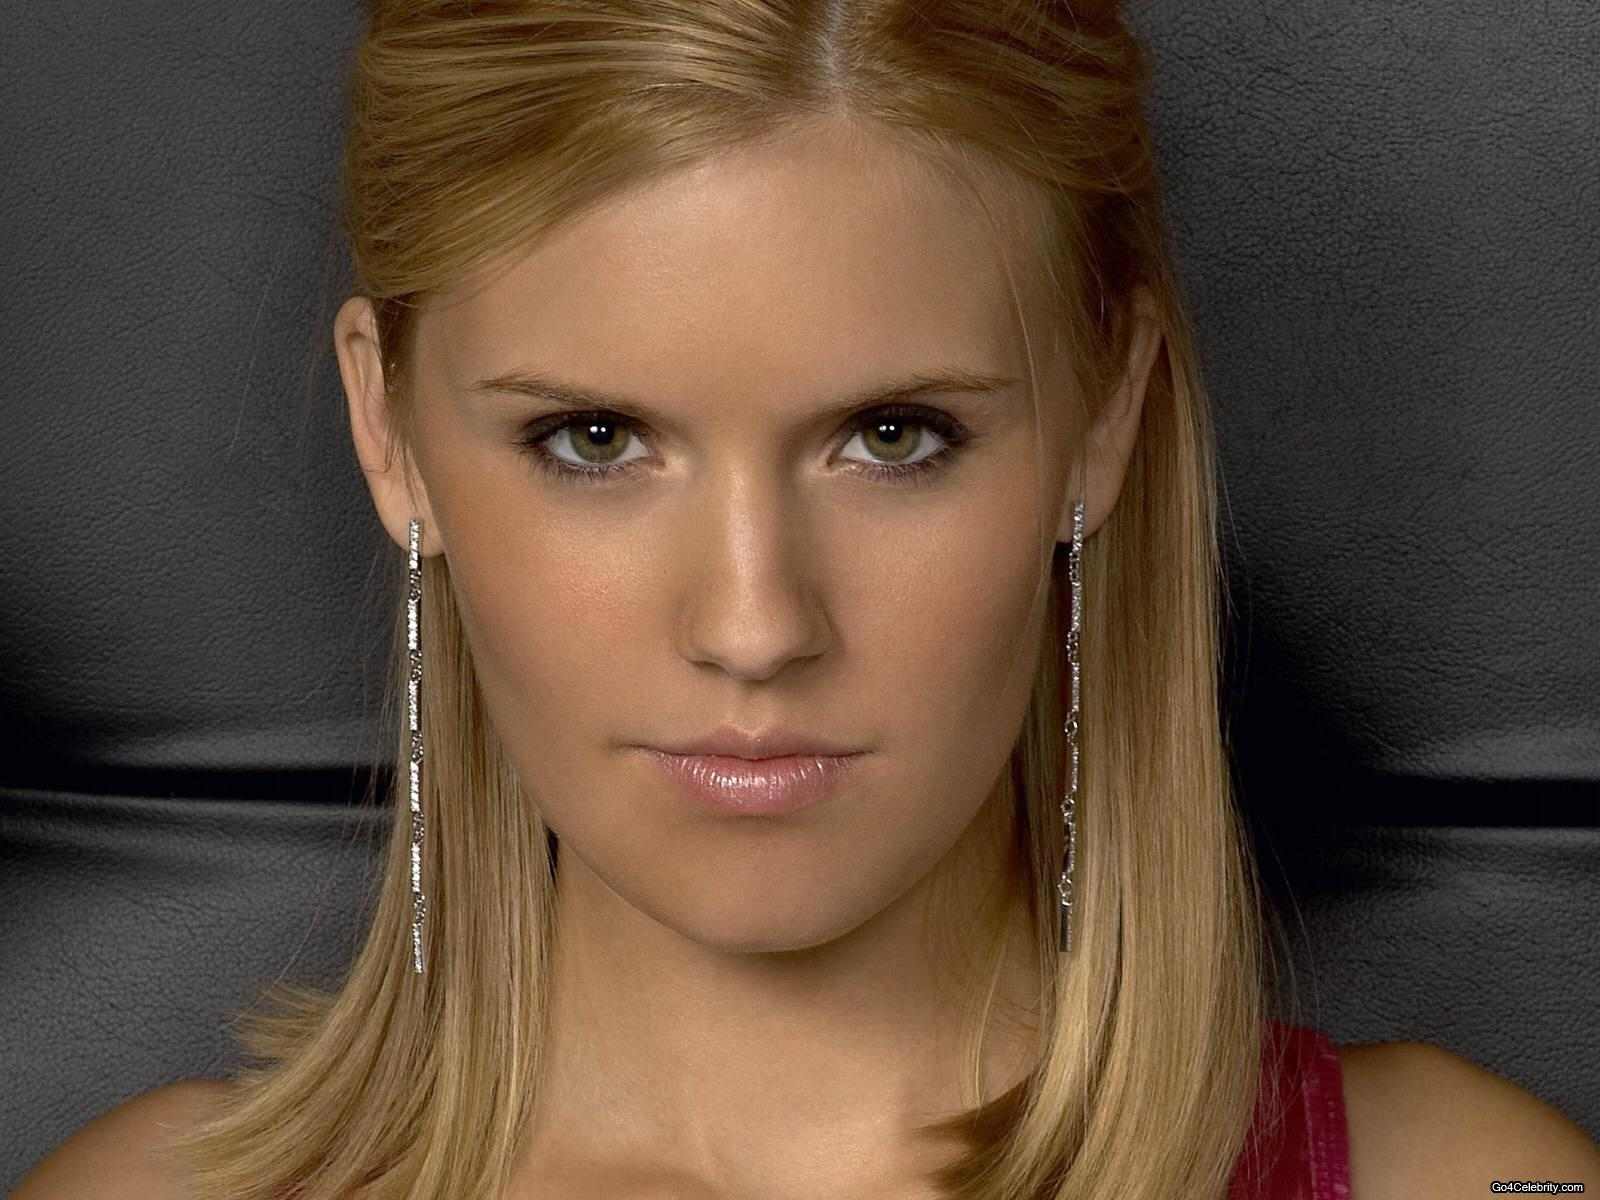 Maggie Grace is headed for Wall Street. The Lost alum has been tapped to co-star opposite Charlie Cox in CBS' untitled Wall Street drama, The Hollywood ...